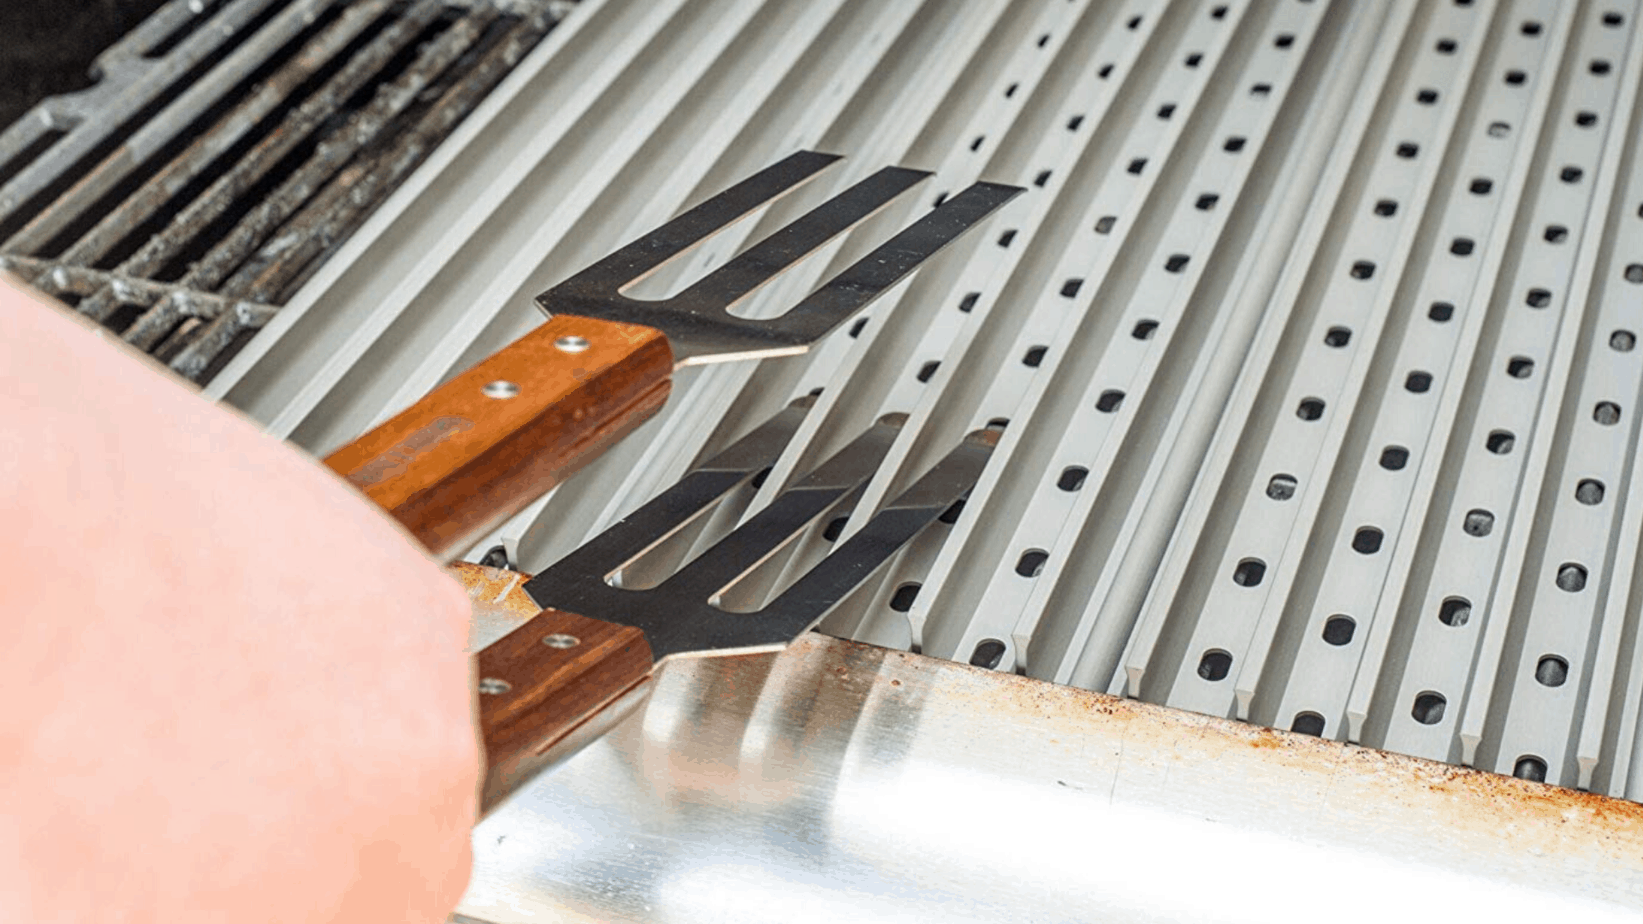 Image of GrillGrate Stainless Steel Professional Grilling Tongs being used on a grill